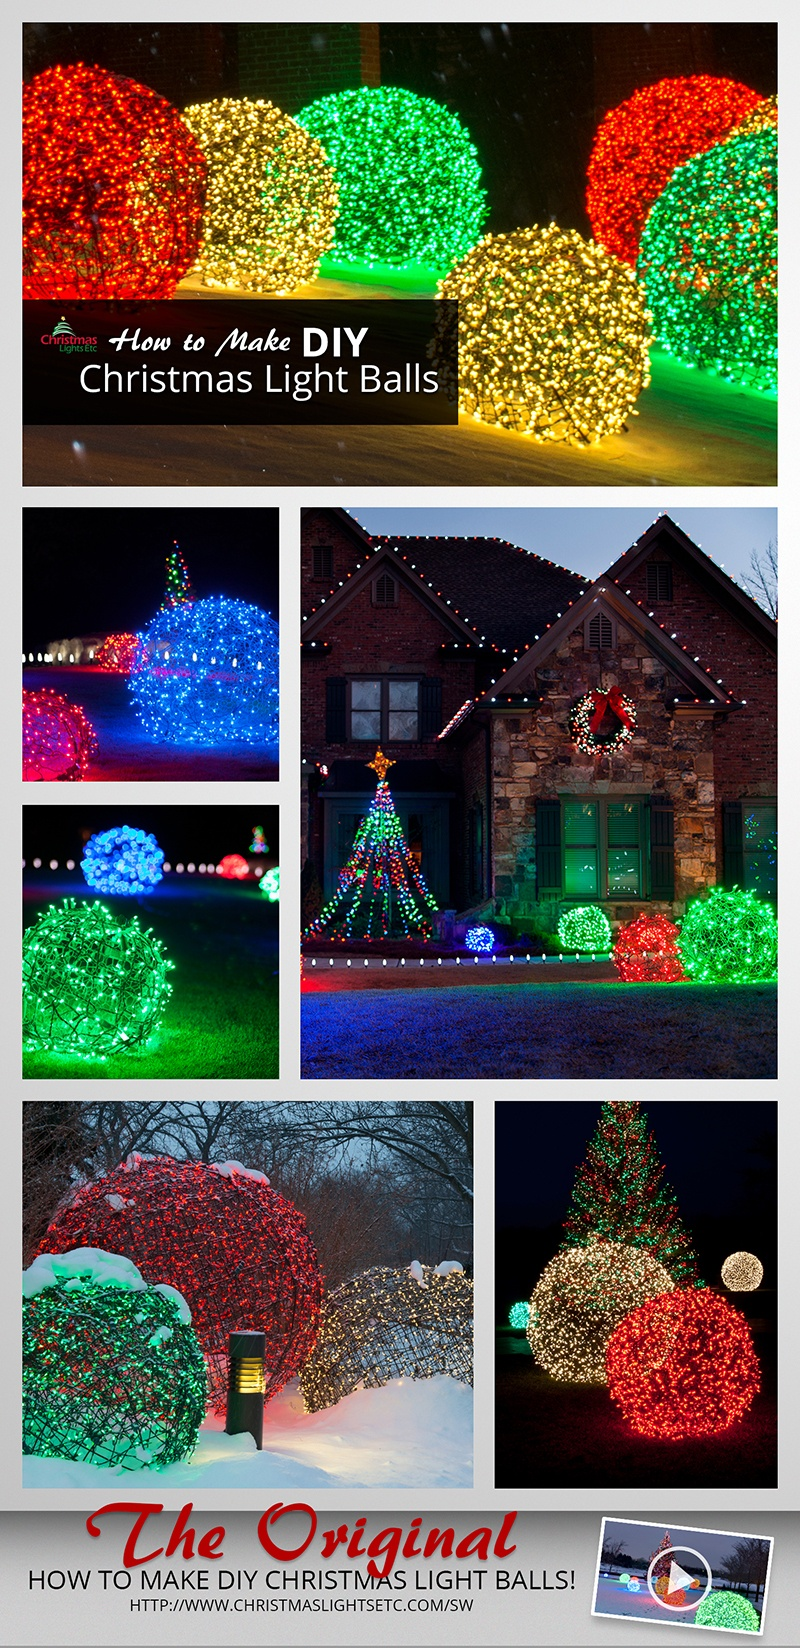 Outdoor Christmas Decoration Ideas - How to Make DIY Christmas Light Balls